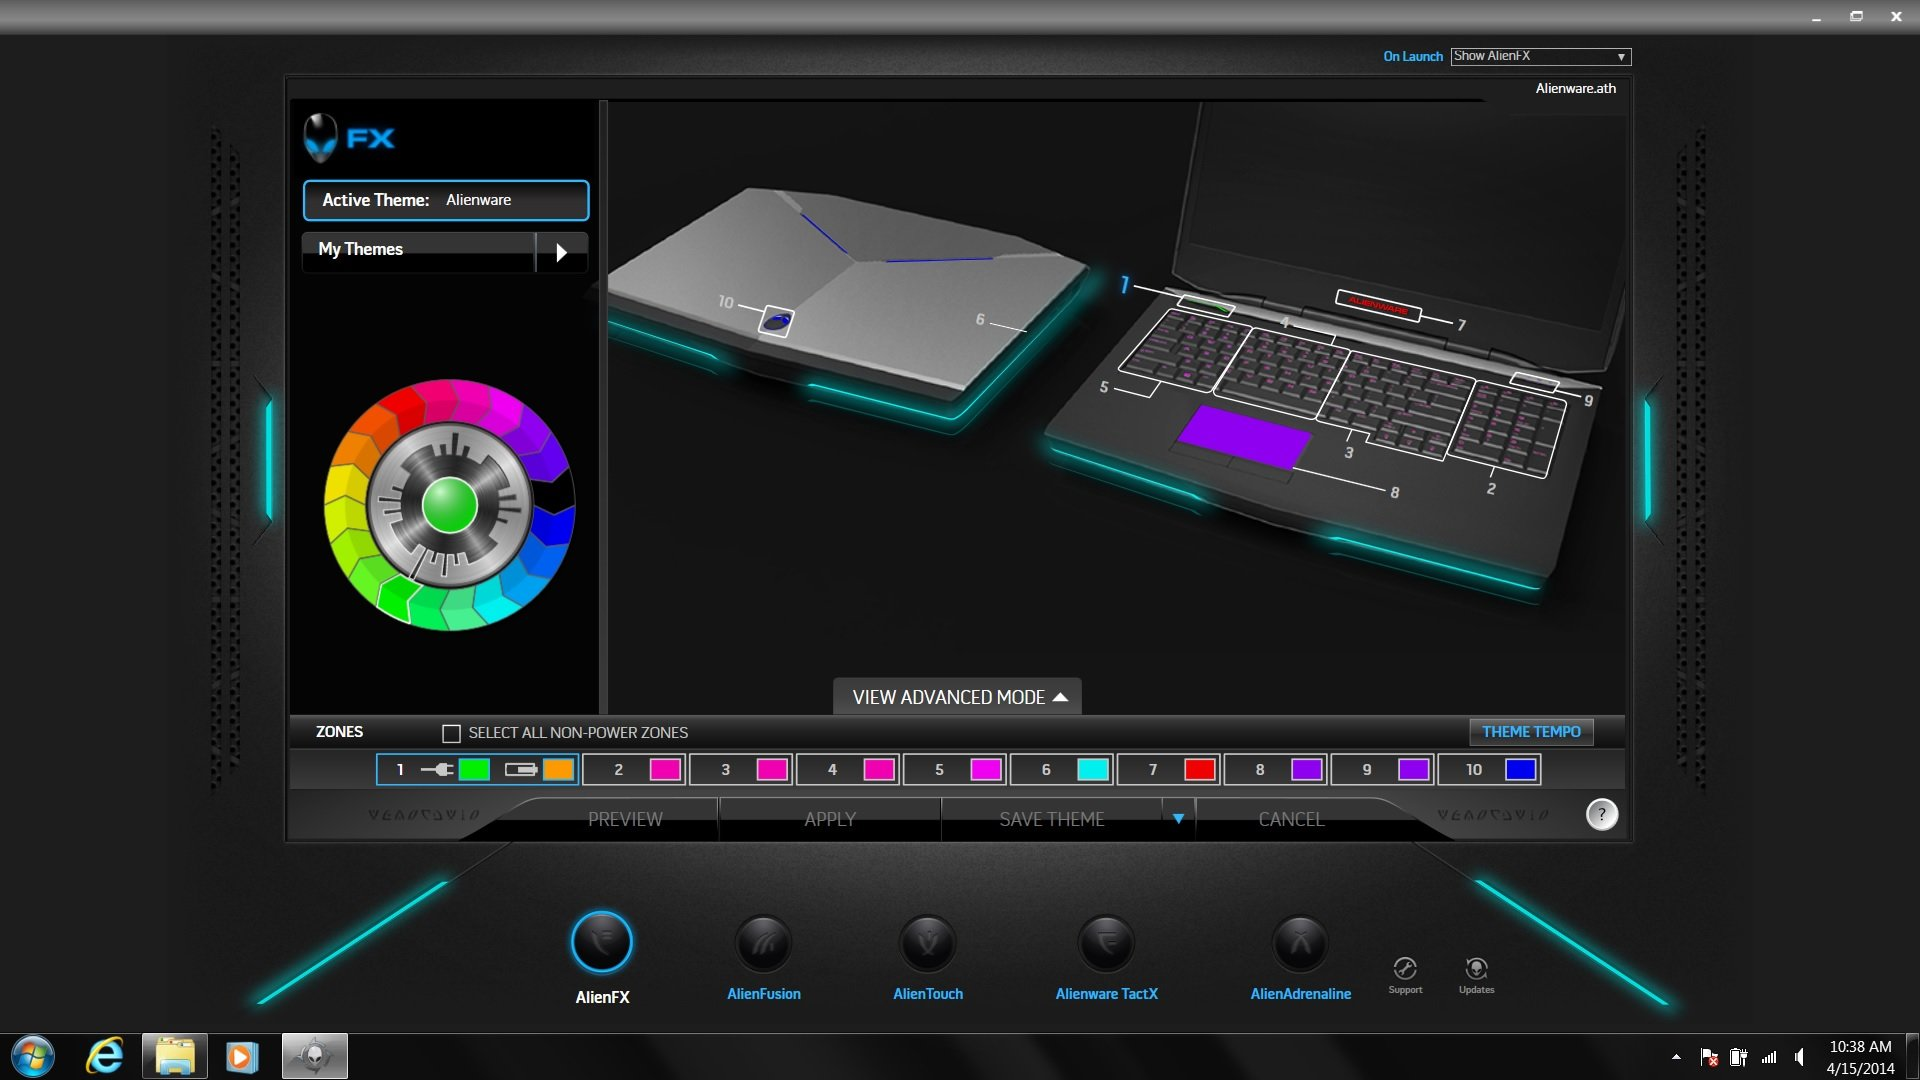 AlienFX is where you change the colors of the Alienware 17's lights.